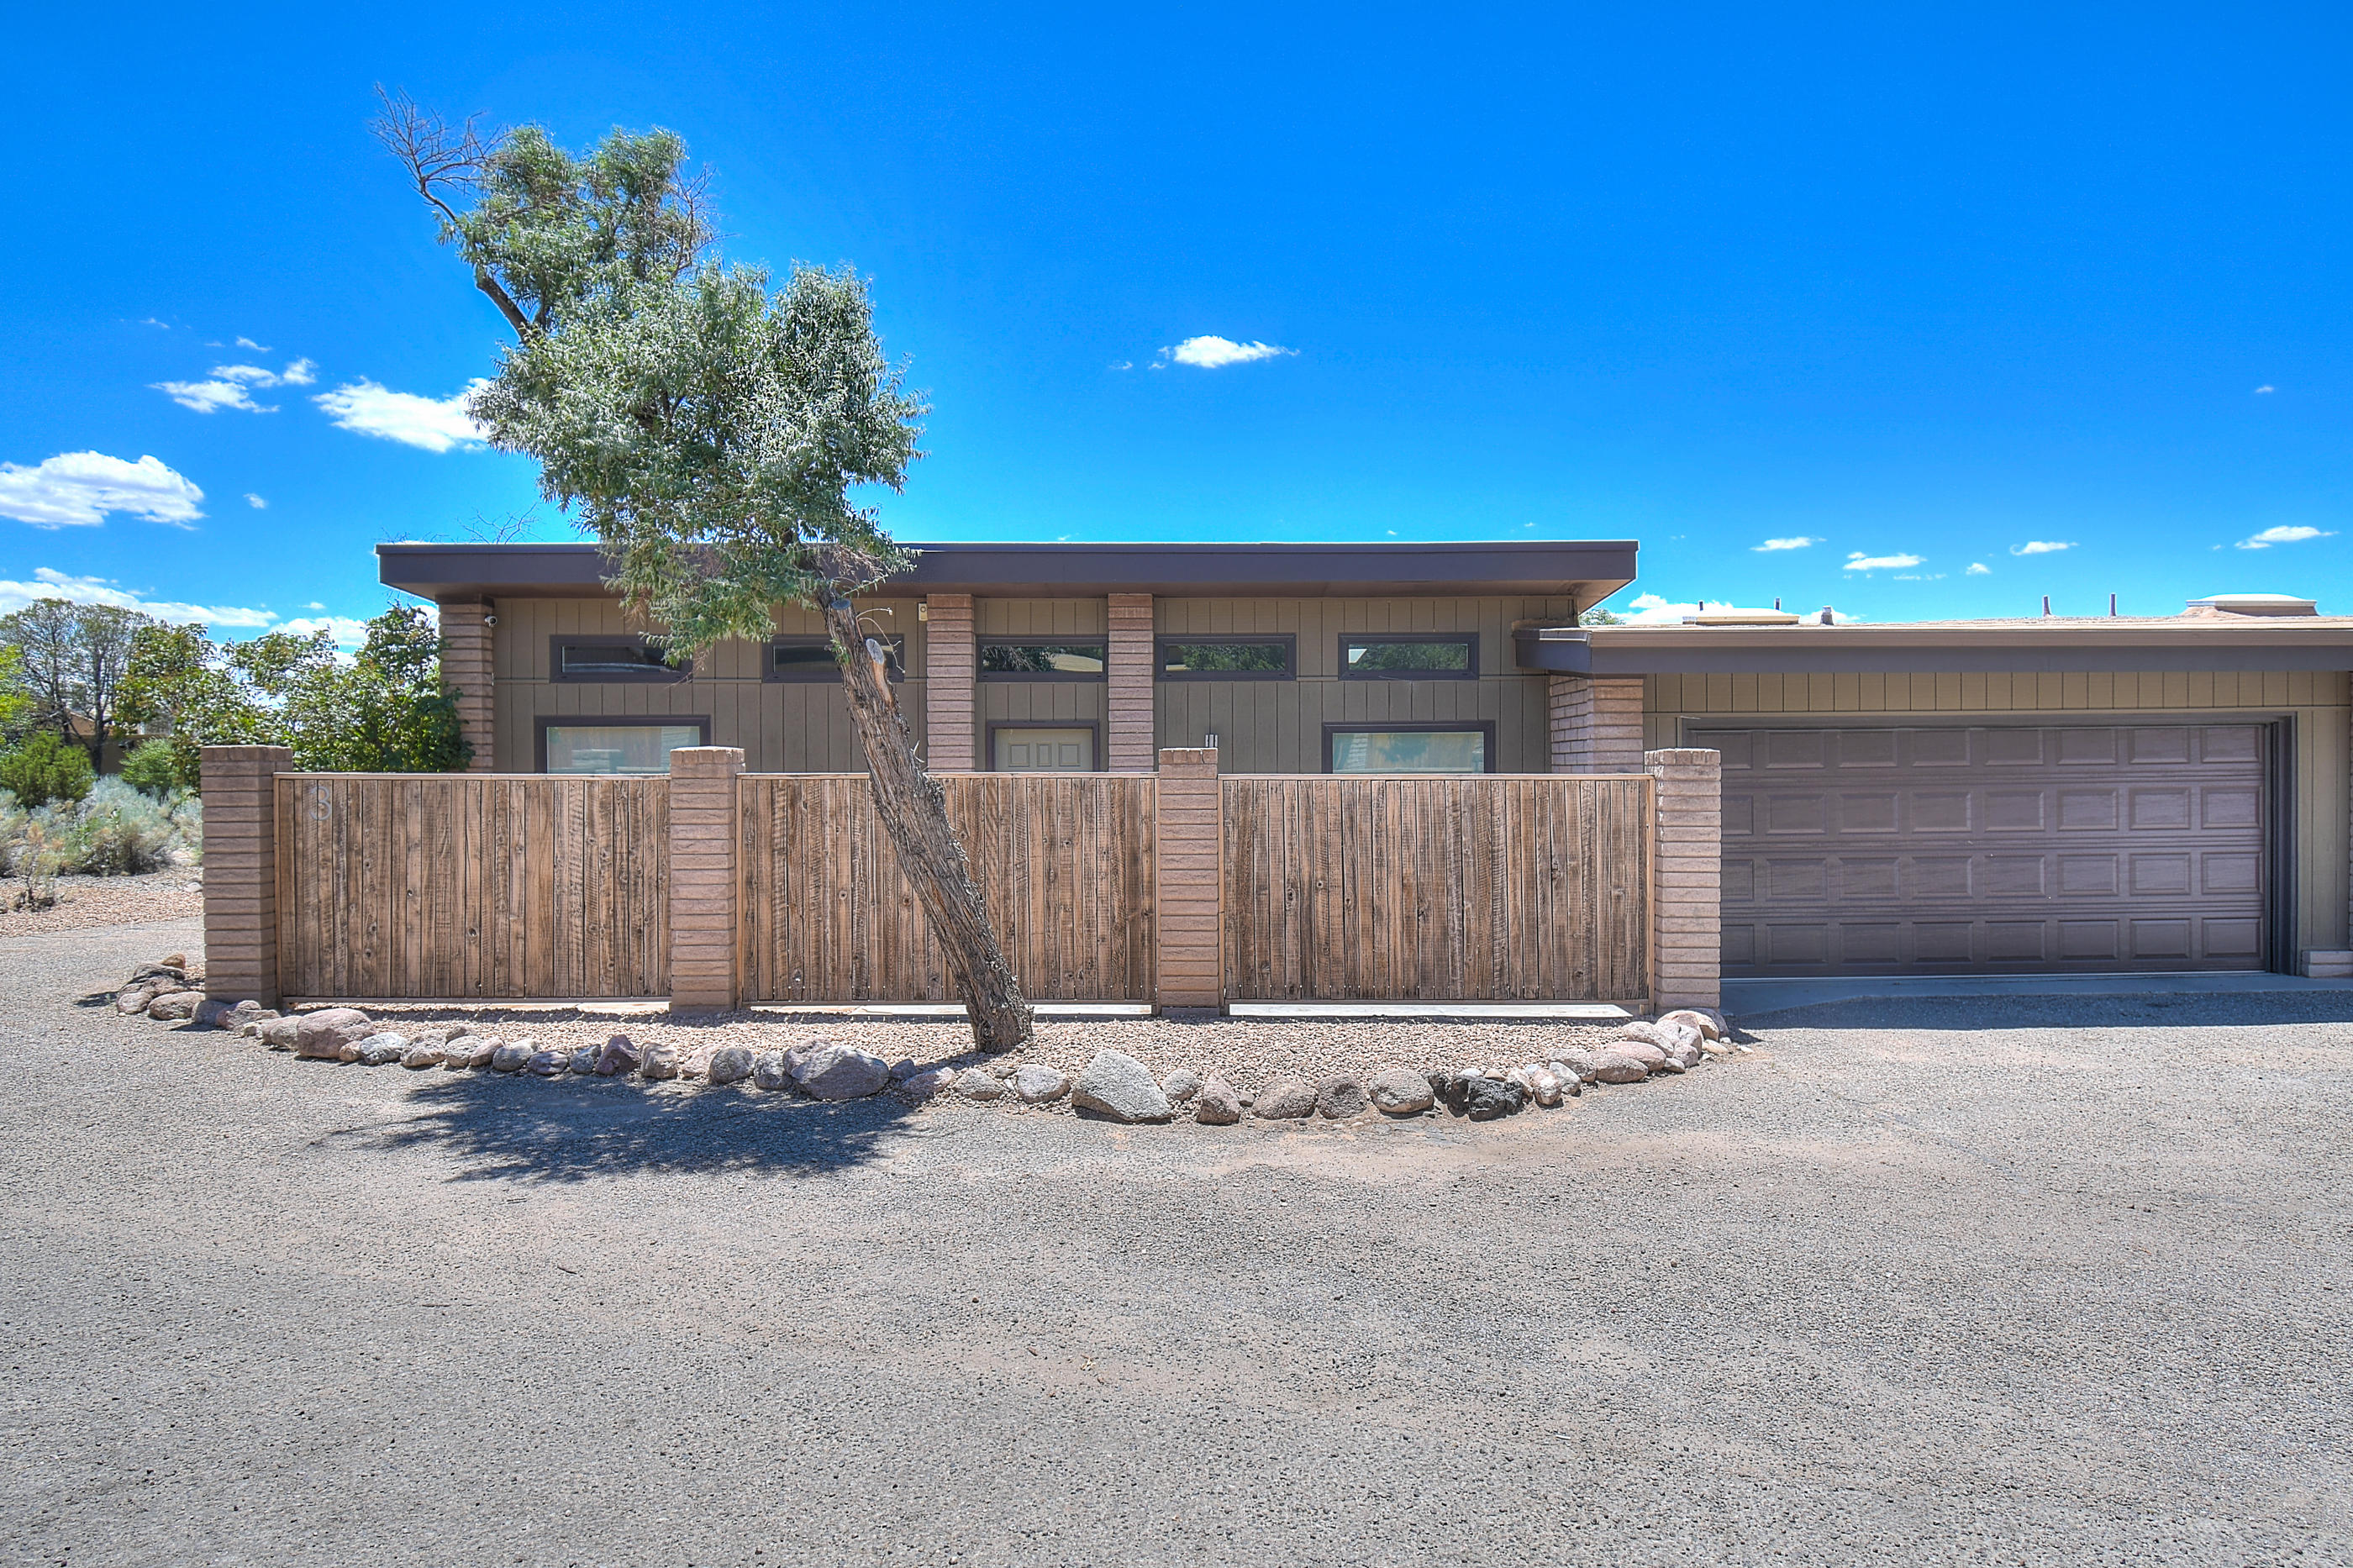 Spectacular Town Home In Sandia Heights! Don't Miss This Modern Hidden Gem Right Next To The Mountains!The Incredible Floor Plan Offers 2BR,2 Full BA,Updated Kitchen, Designer Paint,Custom Light Fixtures,Newer Owned Solar,Ref Air,2CG, And More! Enter The Pleasant Court Yard W/Mountain Views, And Into The Light And Bright Open Concept Kitchen And Living Room With Gracious Windows & Tons Of Natural Light! The Kitchen Has Updated Modern Cabinets, Eat In Counter/Island, Newer Flooring, Electric Range, Dishwasher & Microwave, And Plenty of Counter Space To Work With! Escape Into The Impressive Master Bedroom With Full Master Bath, And A Spacious Walk In Closet Or Bonus Area. Second Bedroom To Follow And Full Guest Bath!So Many Amenities In This Home, And Close To Shopping And Restaunts!